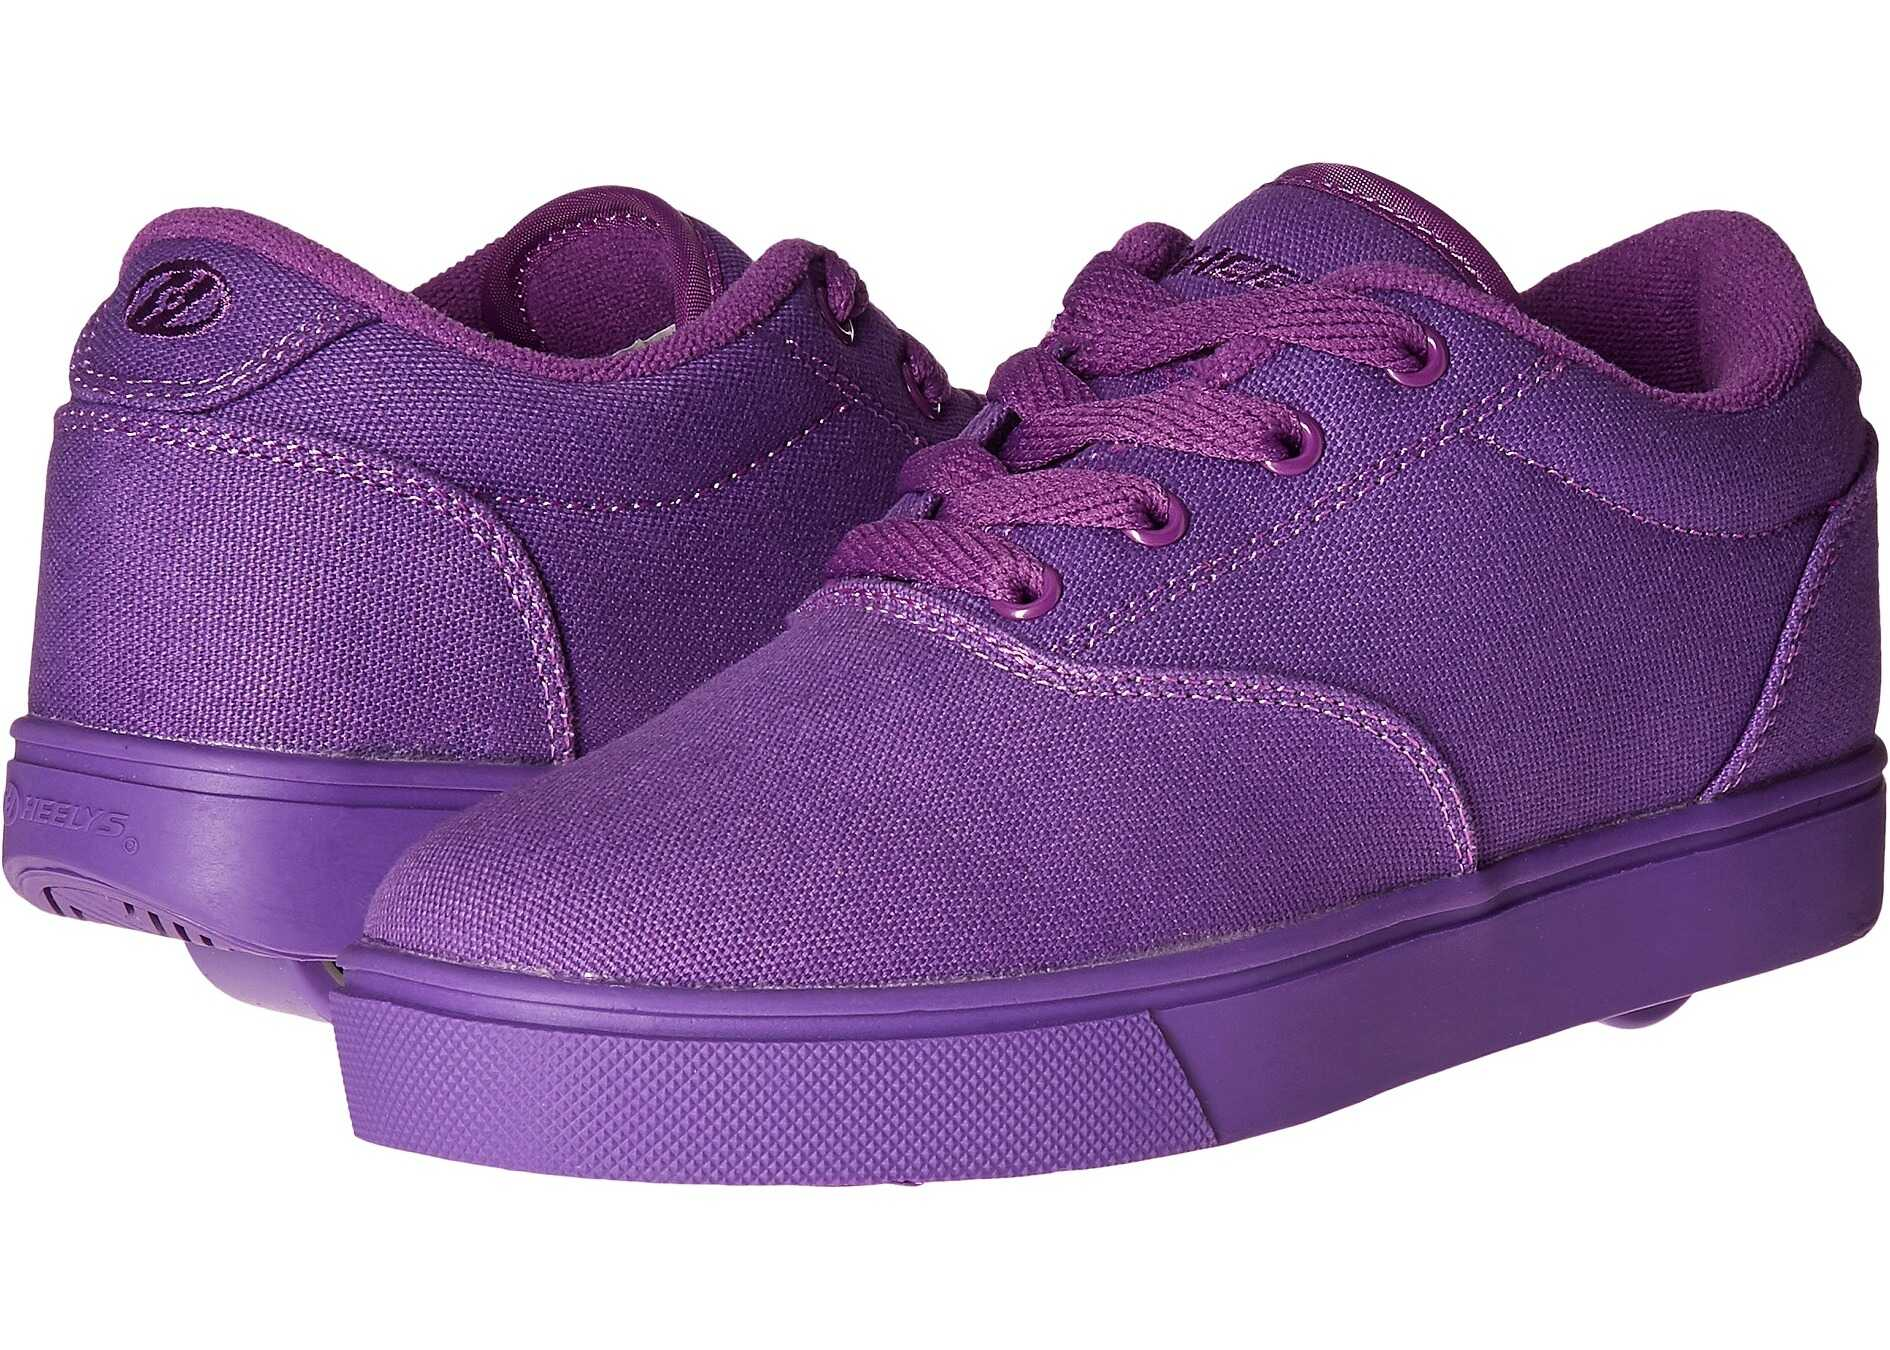 Heelys Launch (Little Kid/Big Kid/Adult) Purple Solid